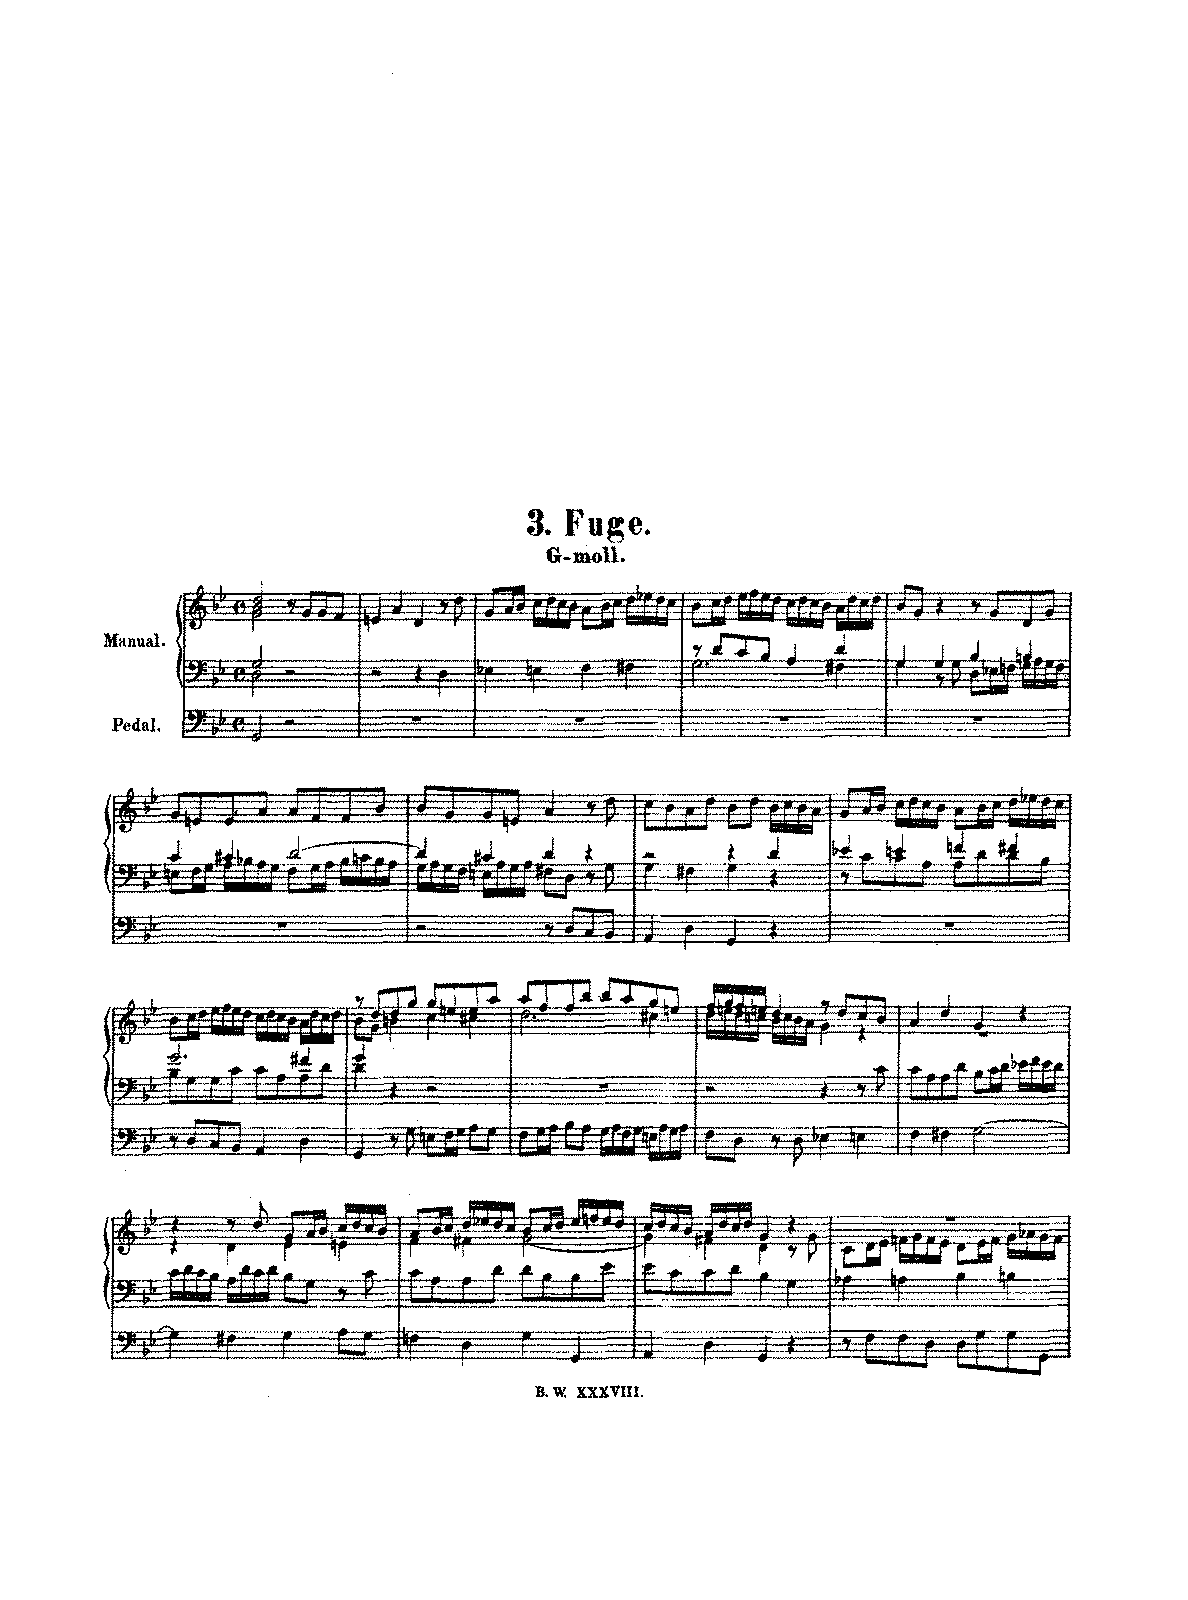 Bach - BGA - Fugue g minor.pdf